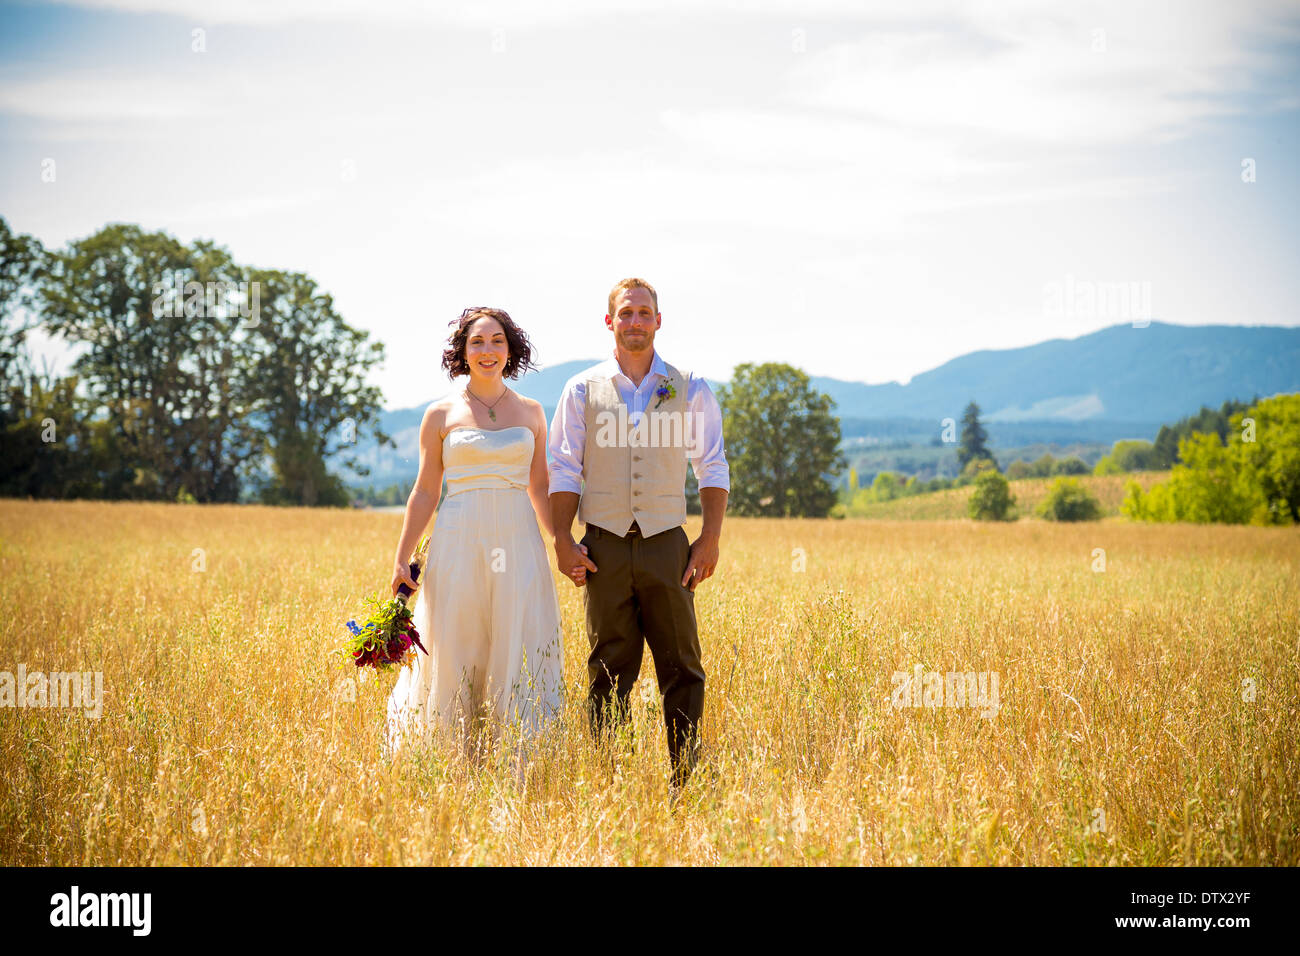 Bride and groom standing together in a field on their wedding day. - Stock Image